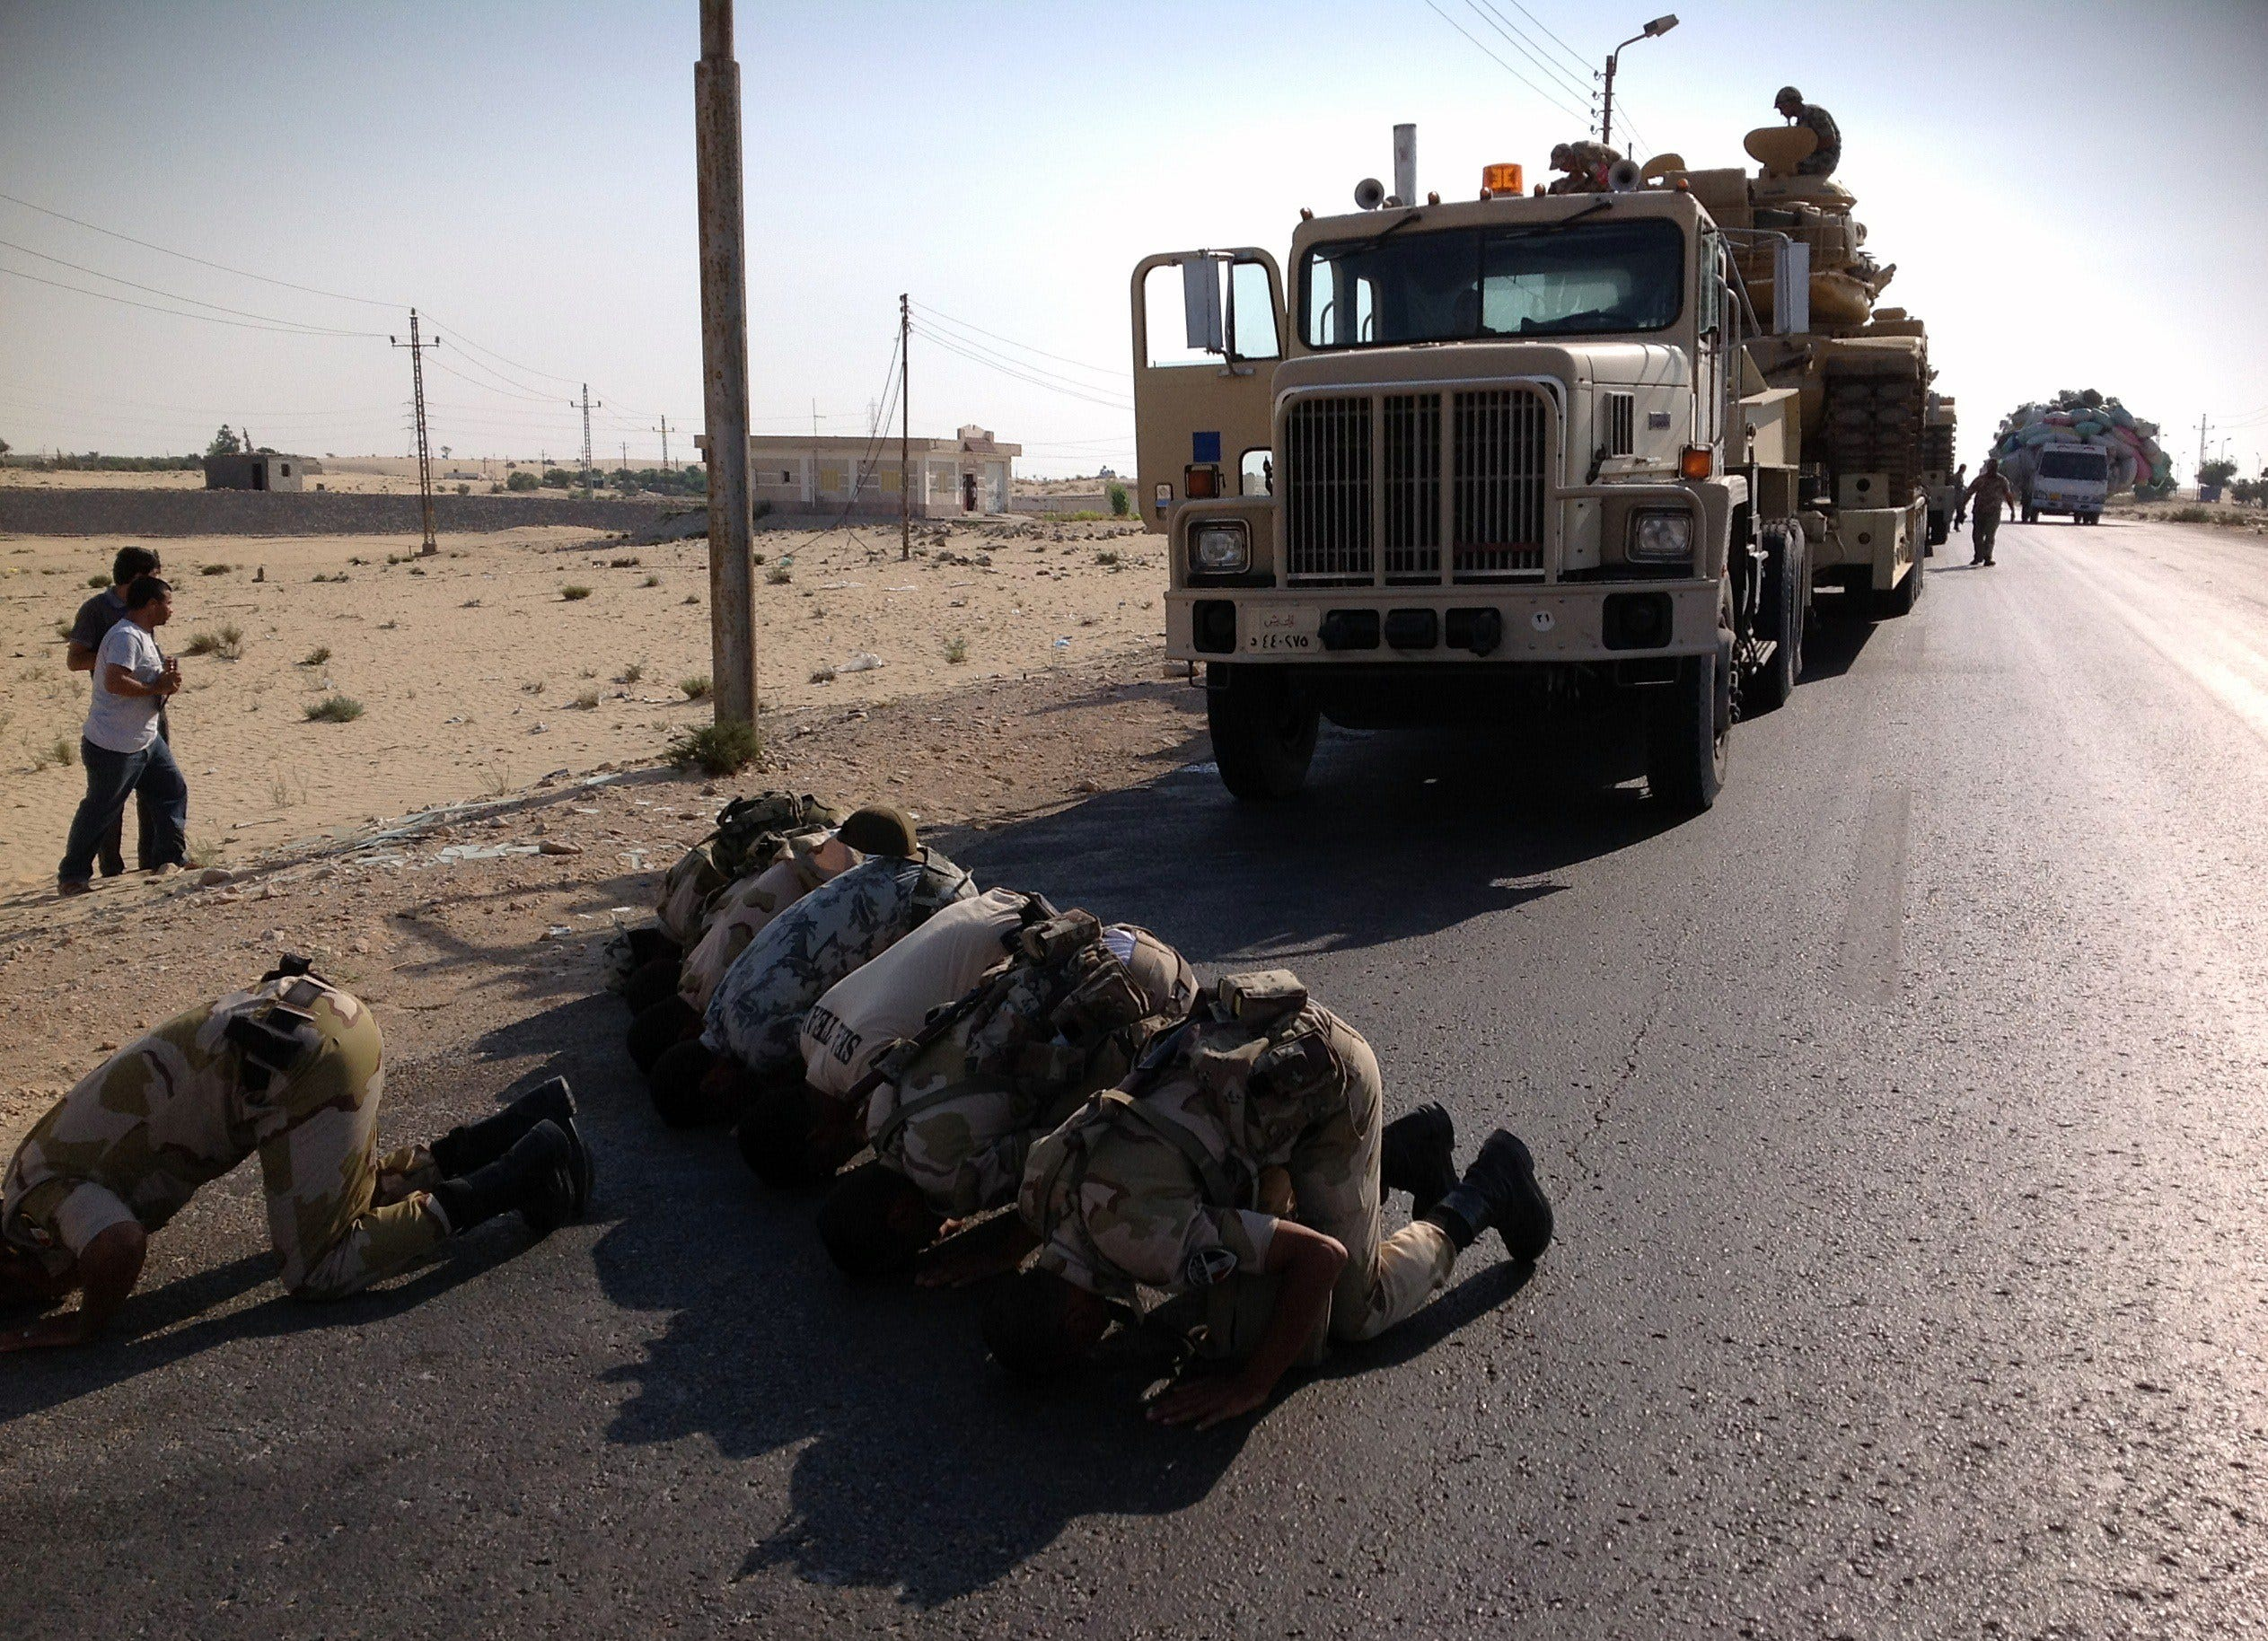 A picture taken on July 16 shows Egyptian soldiers praying as they are deployed in the northern Sinai town of Al-Arish.